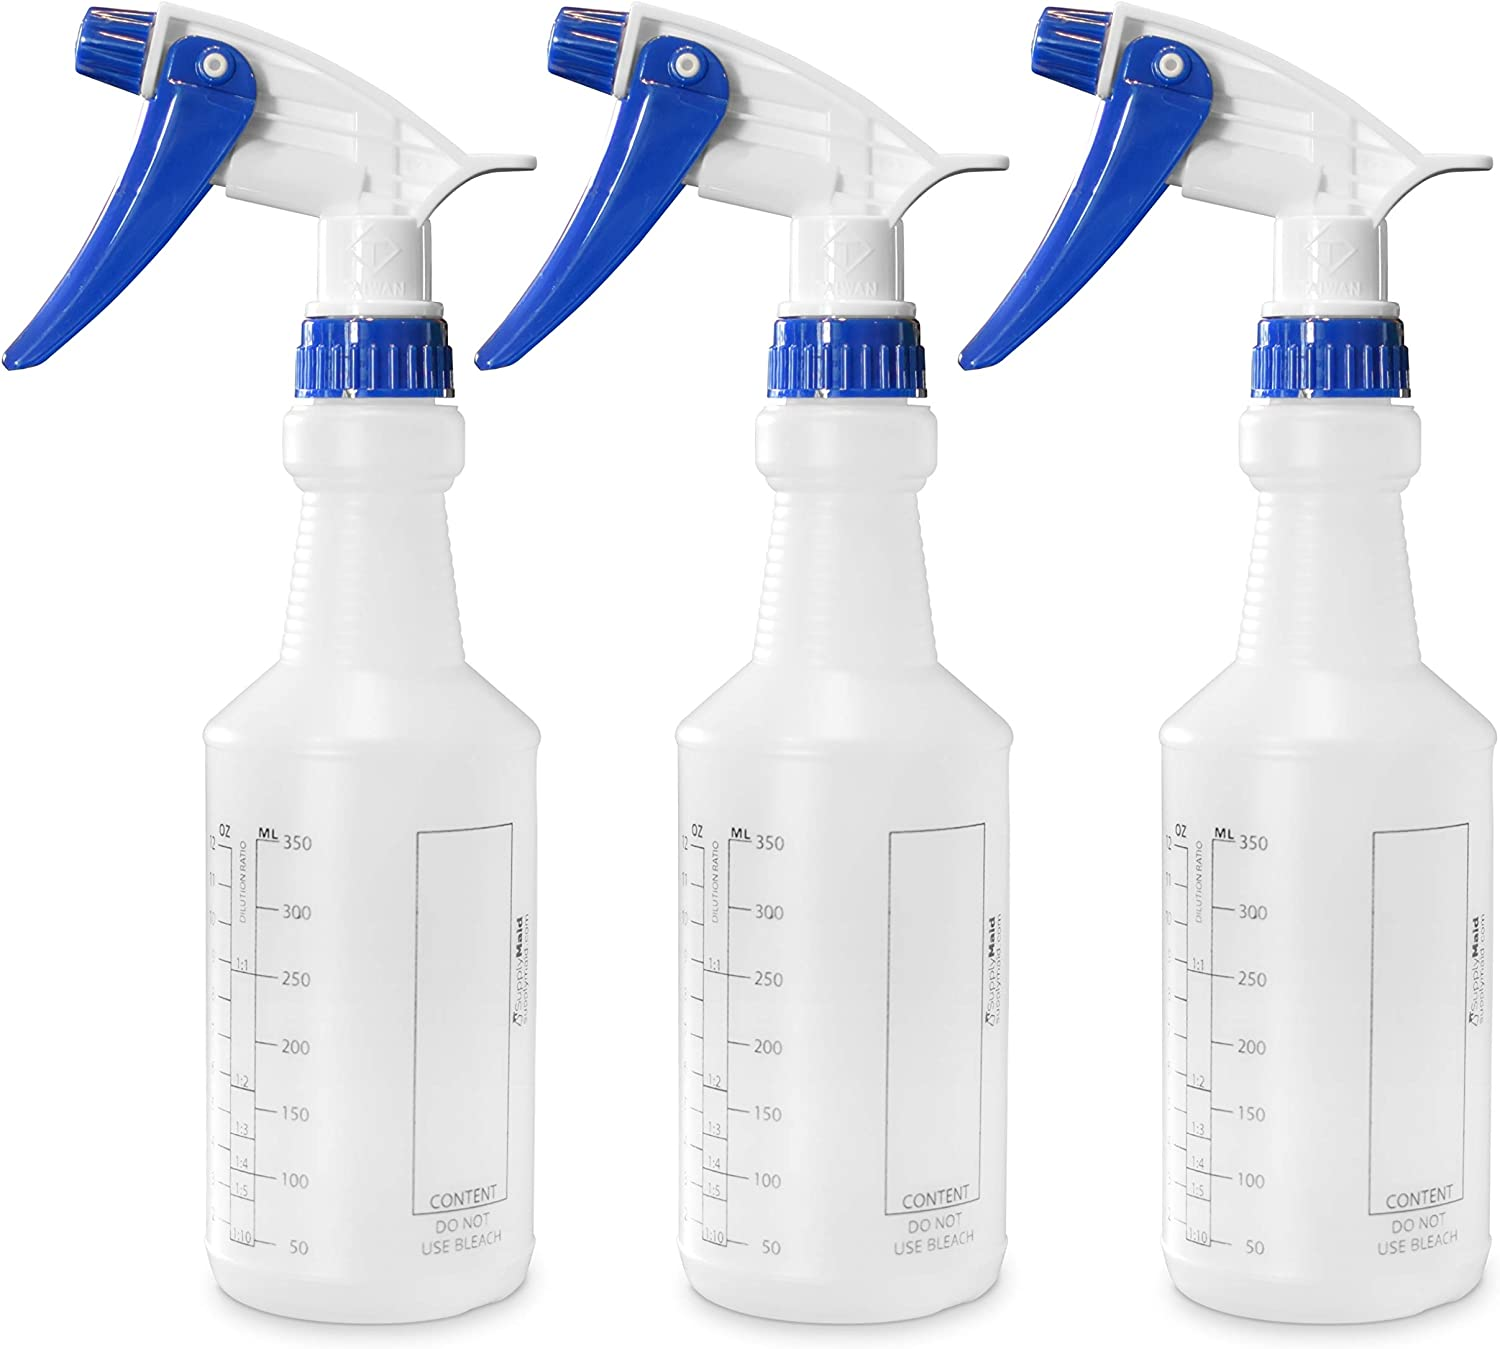 SupplyMaid Commercial-Grade 16 oz Spray Bottles with Dilution Ratios/Ounces/mL    Cleaning & Food Safe    Highest-Quality Leak-Proof Rubber, Steel, HDPE Components    Blue 3-Pack